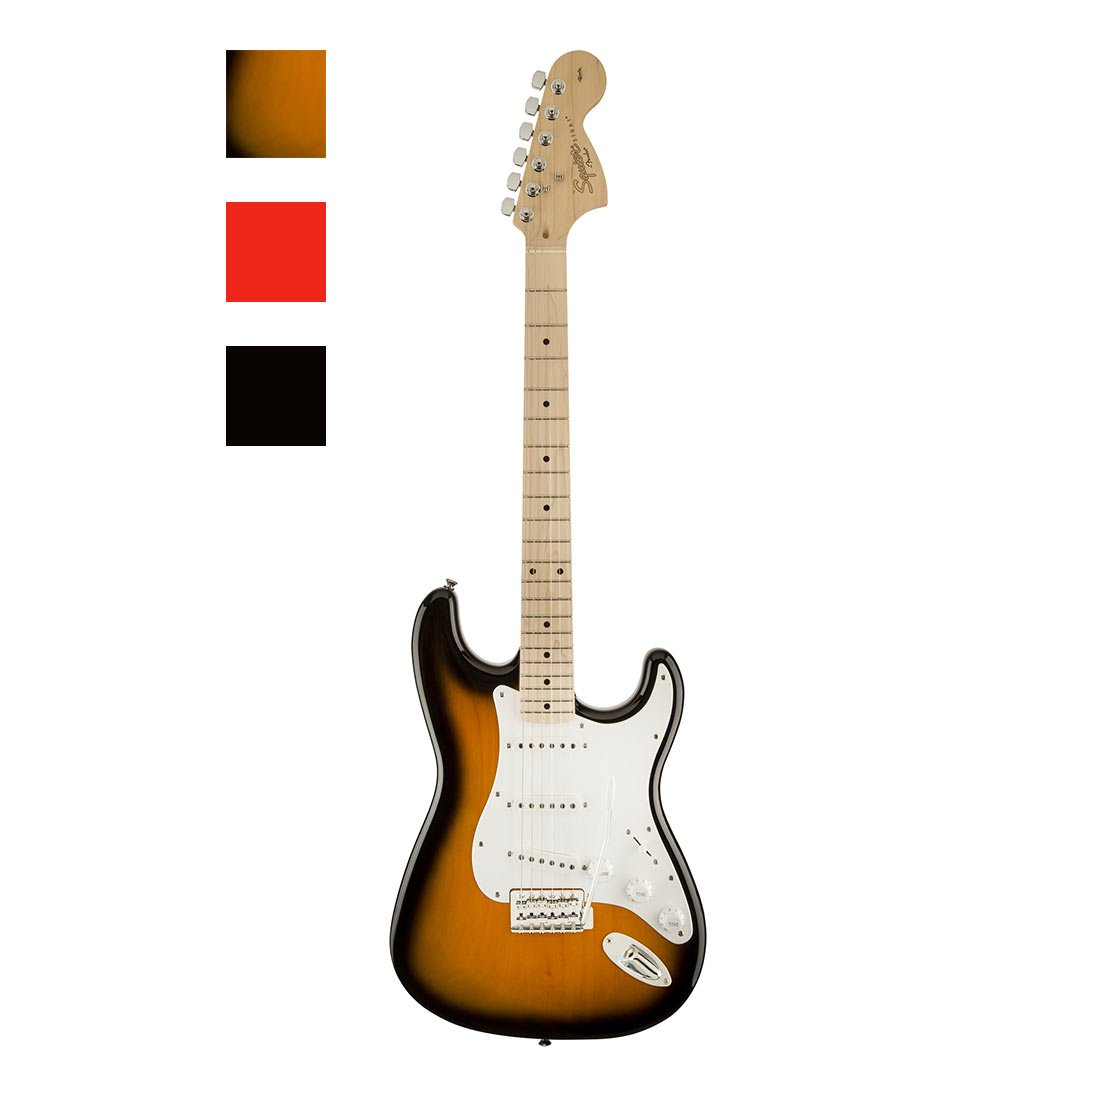 squier strat affinity electric guitar amp by fender musical instrument hire co. Black Bedroom Furniture Sets. Home Design Ideas